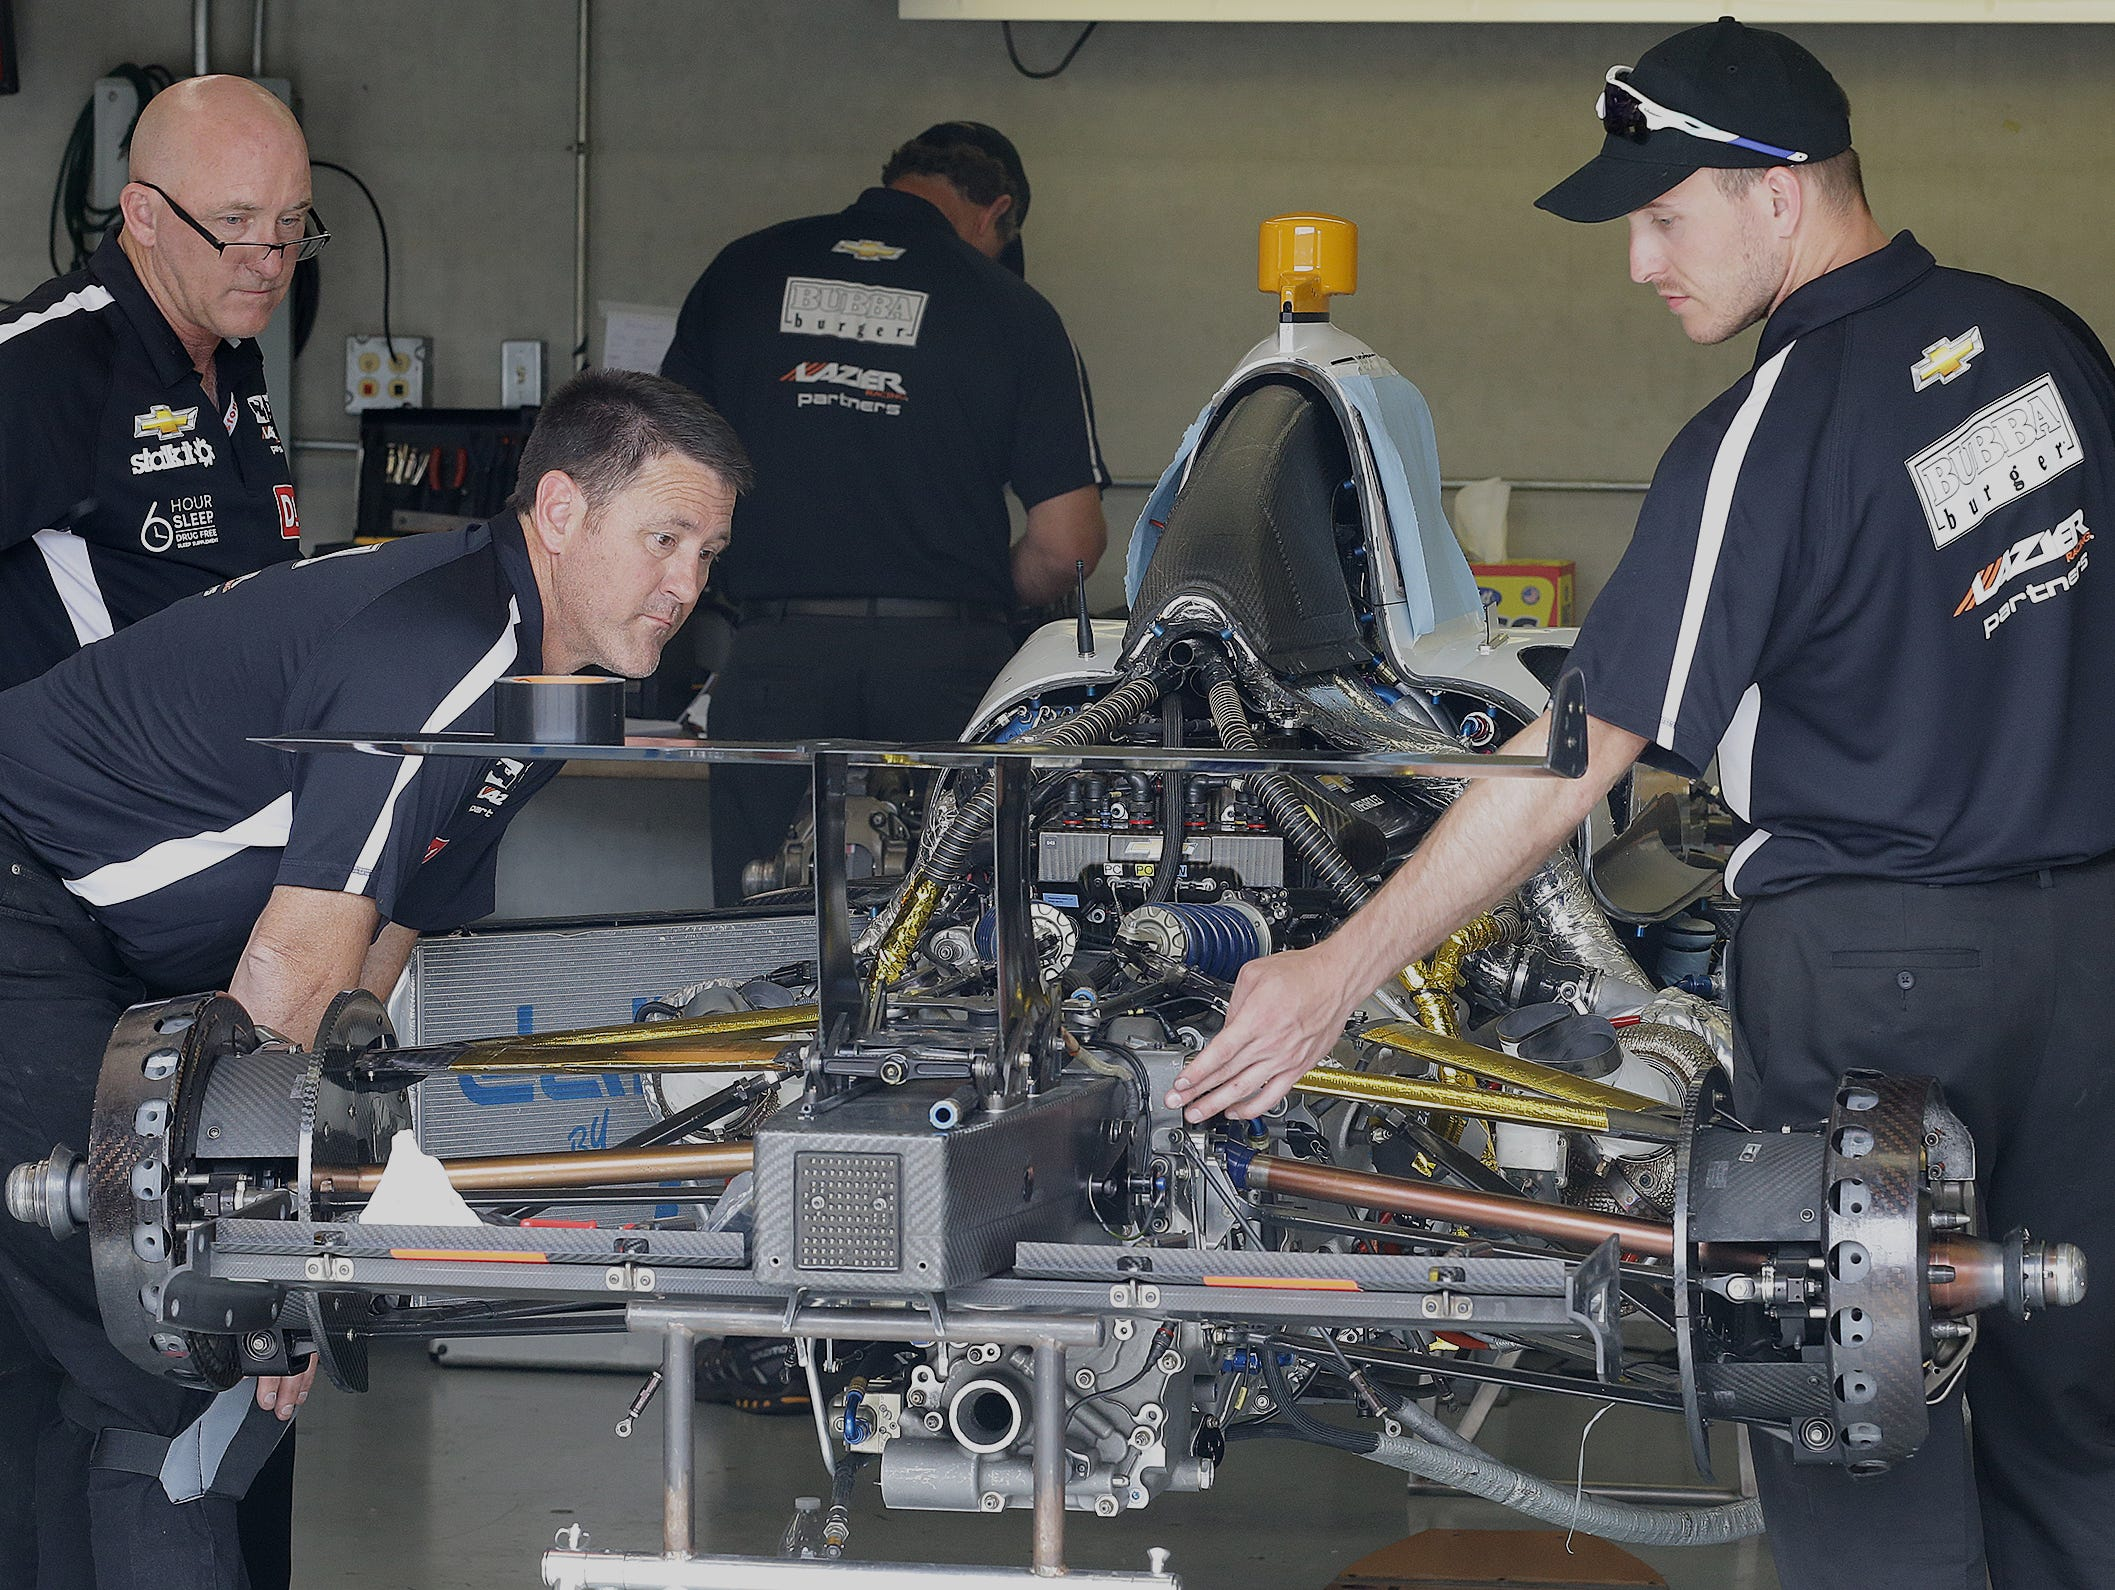 Buddy Lazier operates on a shoestring and a prayer. His car arrived at Indianapolis Motor Speedway missing a few parts. It wasn't ready for practice runs until the day before qualifying.